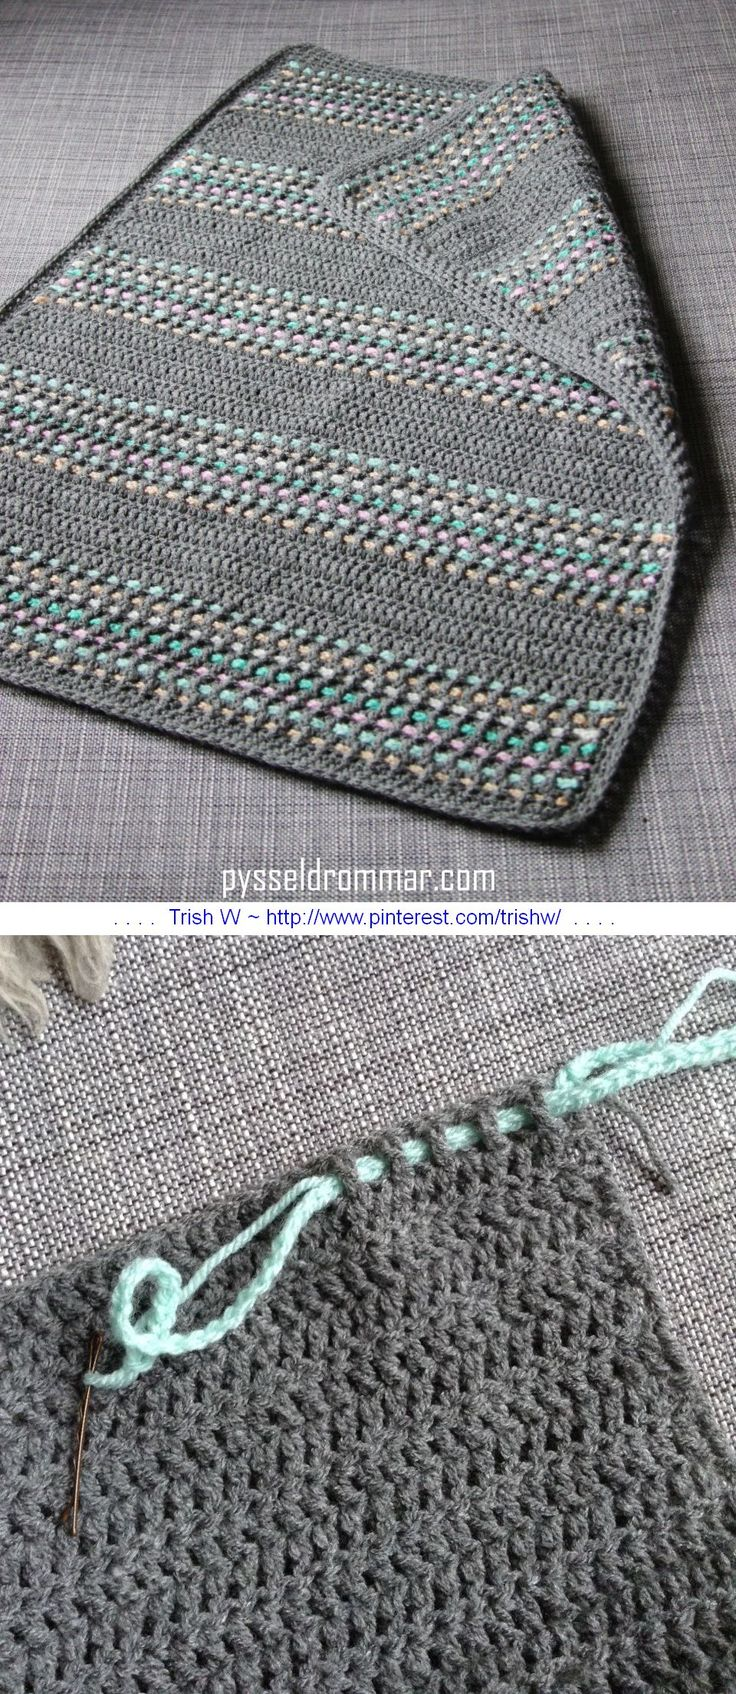 A very simple baby blanket + add color by weaving chains through the stitches.